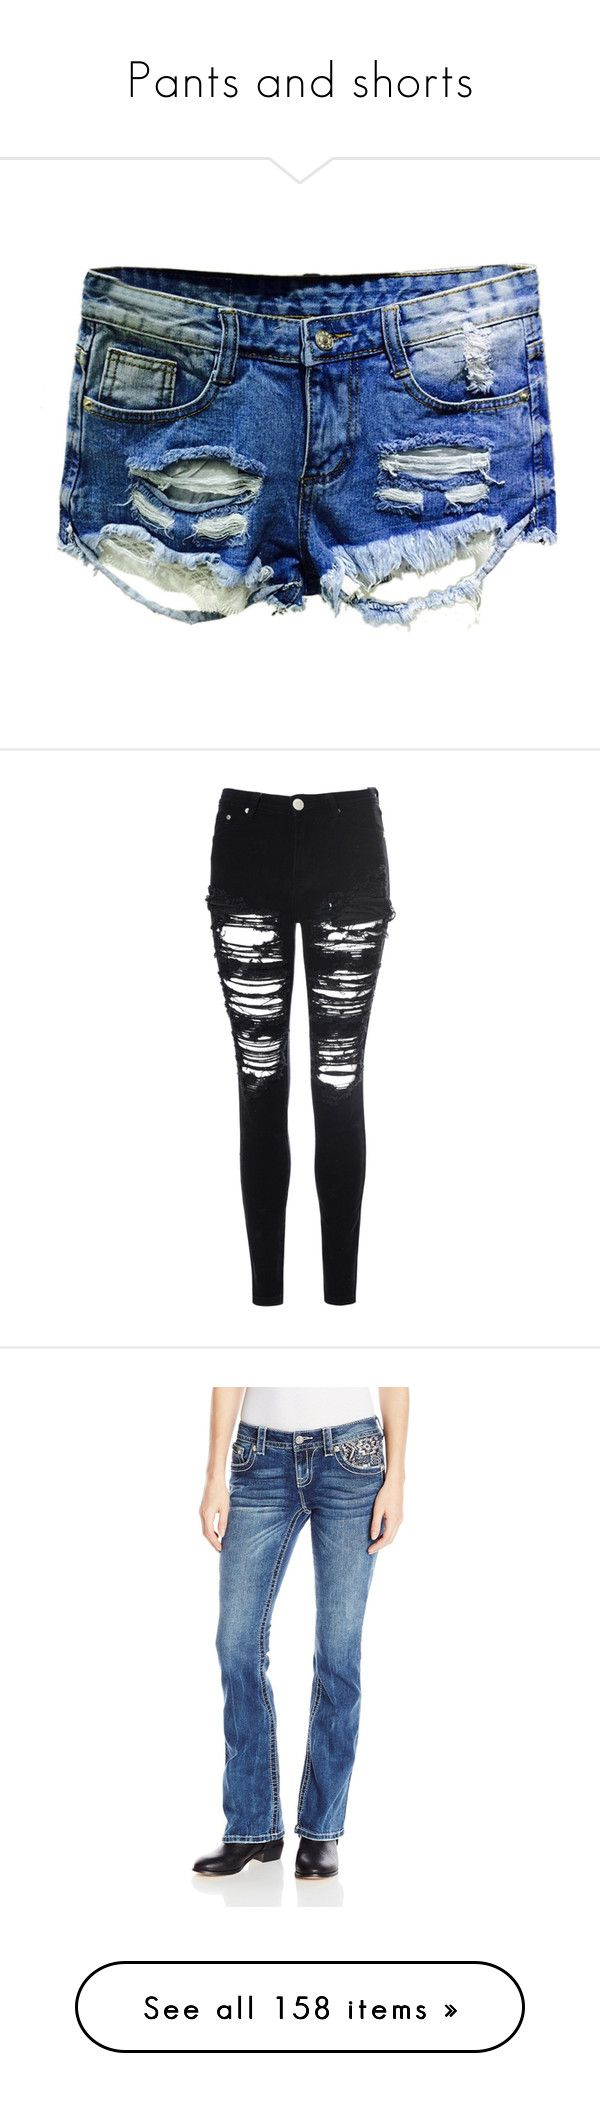 Pants and shorts by fallenangel2002 on Polyvore featuring polyvore, women's fashion, clothing, shorts, bottoms, pants, short, blue, blue hot pants, mini shorts, denim short shorts, hot short shorts, distressed shorts, jeans, black, destructed jeans, distressed skinny jeans, ripped jeans, destroyed skinny jeans, destruction jeans, rhinestone embellished jeans, blue jeans, embroidery jeans, boot-cut jeans, flap-pocket jeans, mid stone, torn shorts, vintage shorts, vintage distressed shorts…